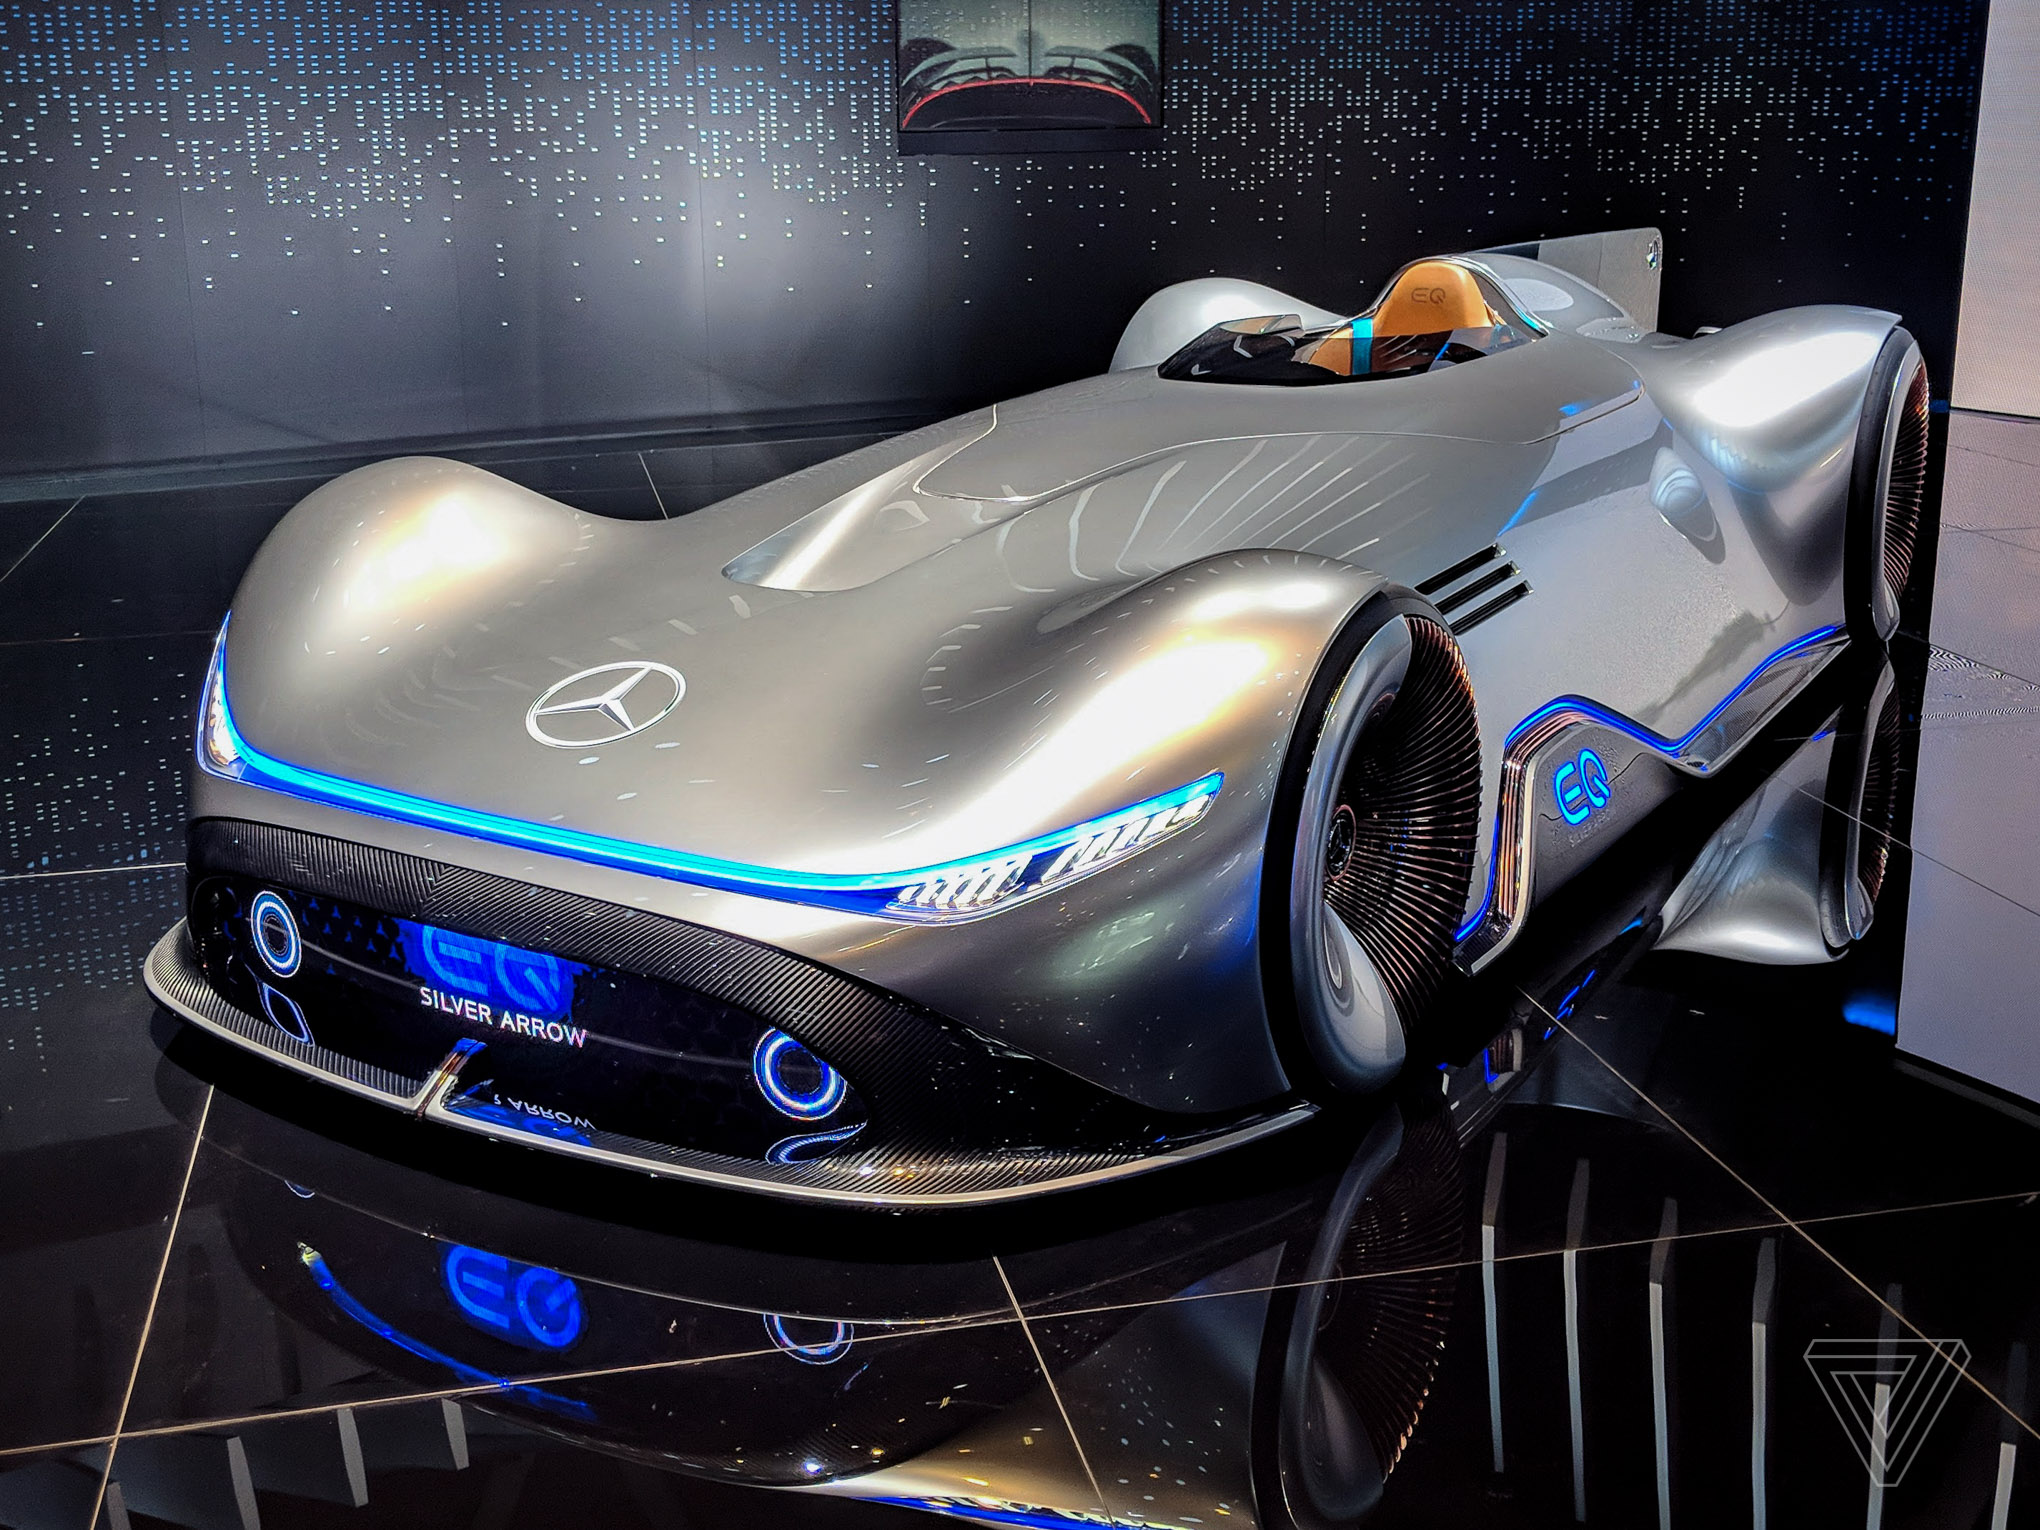 Mercedes Eq Silver Arrow Blends Clic Design With Electric Supers